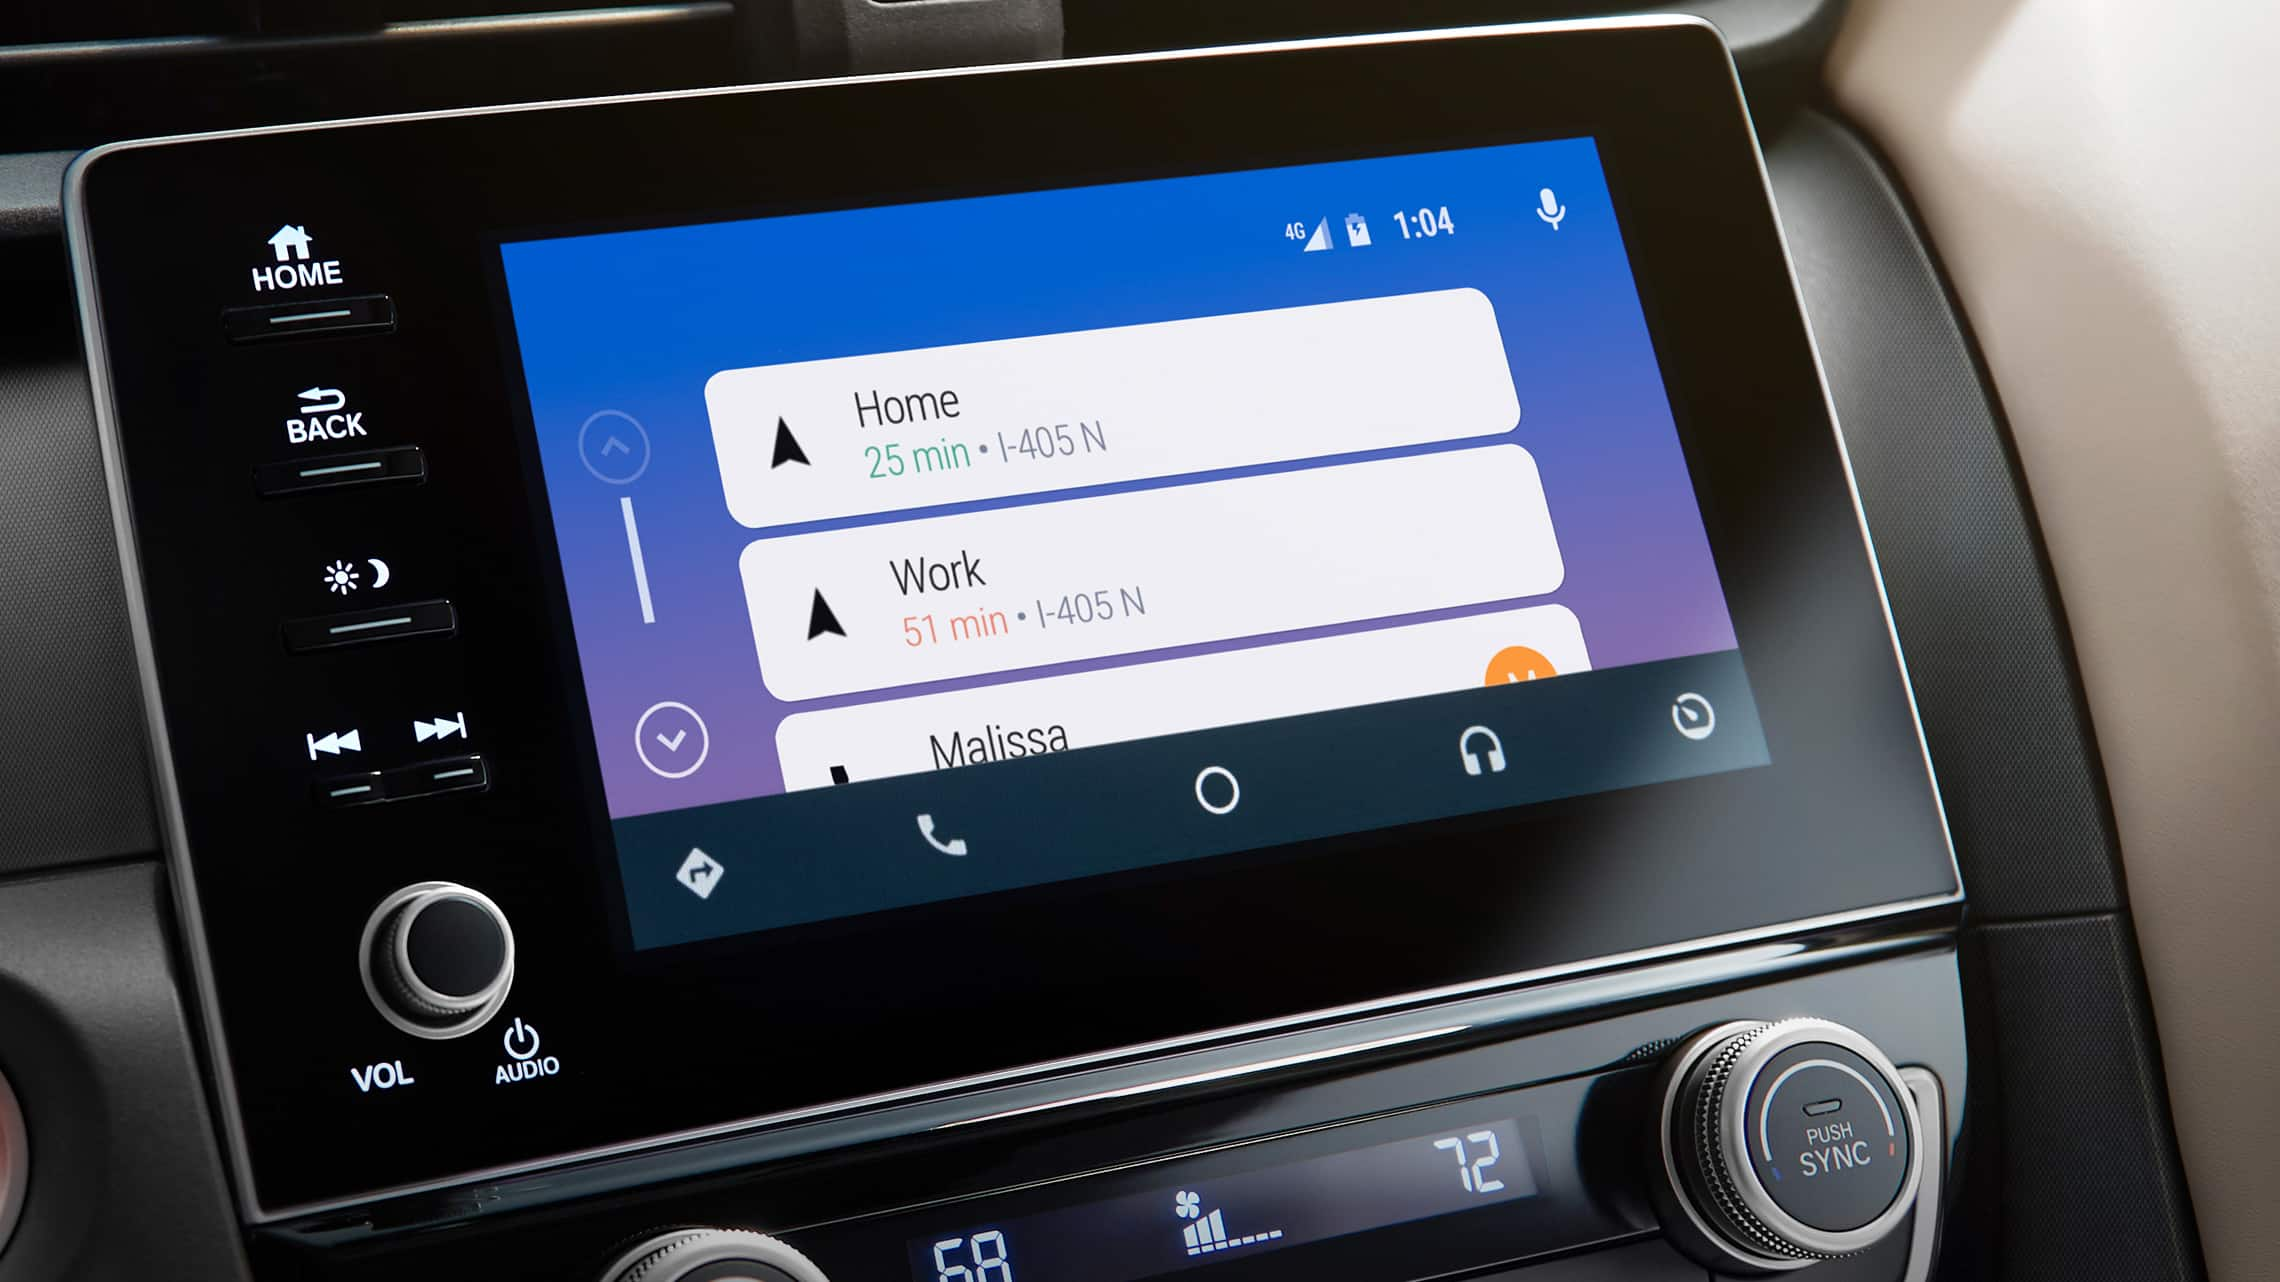 Android Auto™ map screen detail on the Display Audio touch-screen in the 2021 Honda Insight.